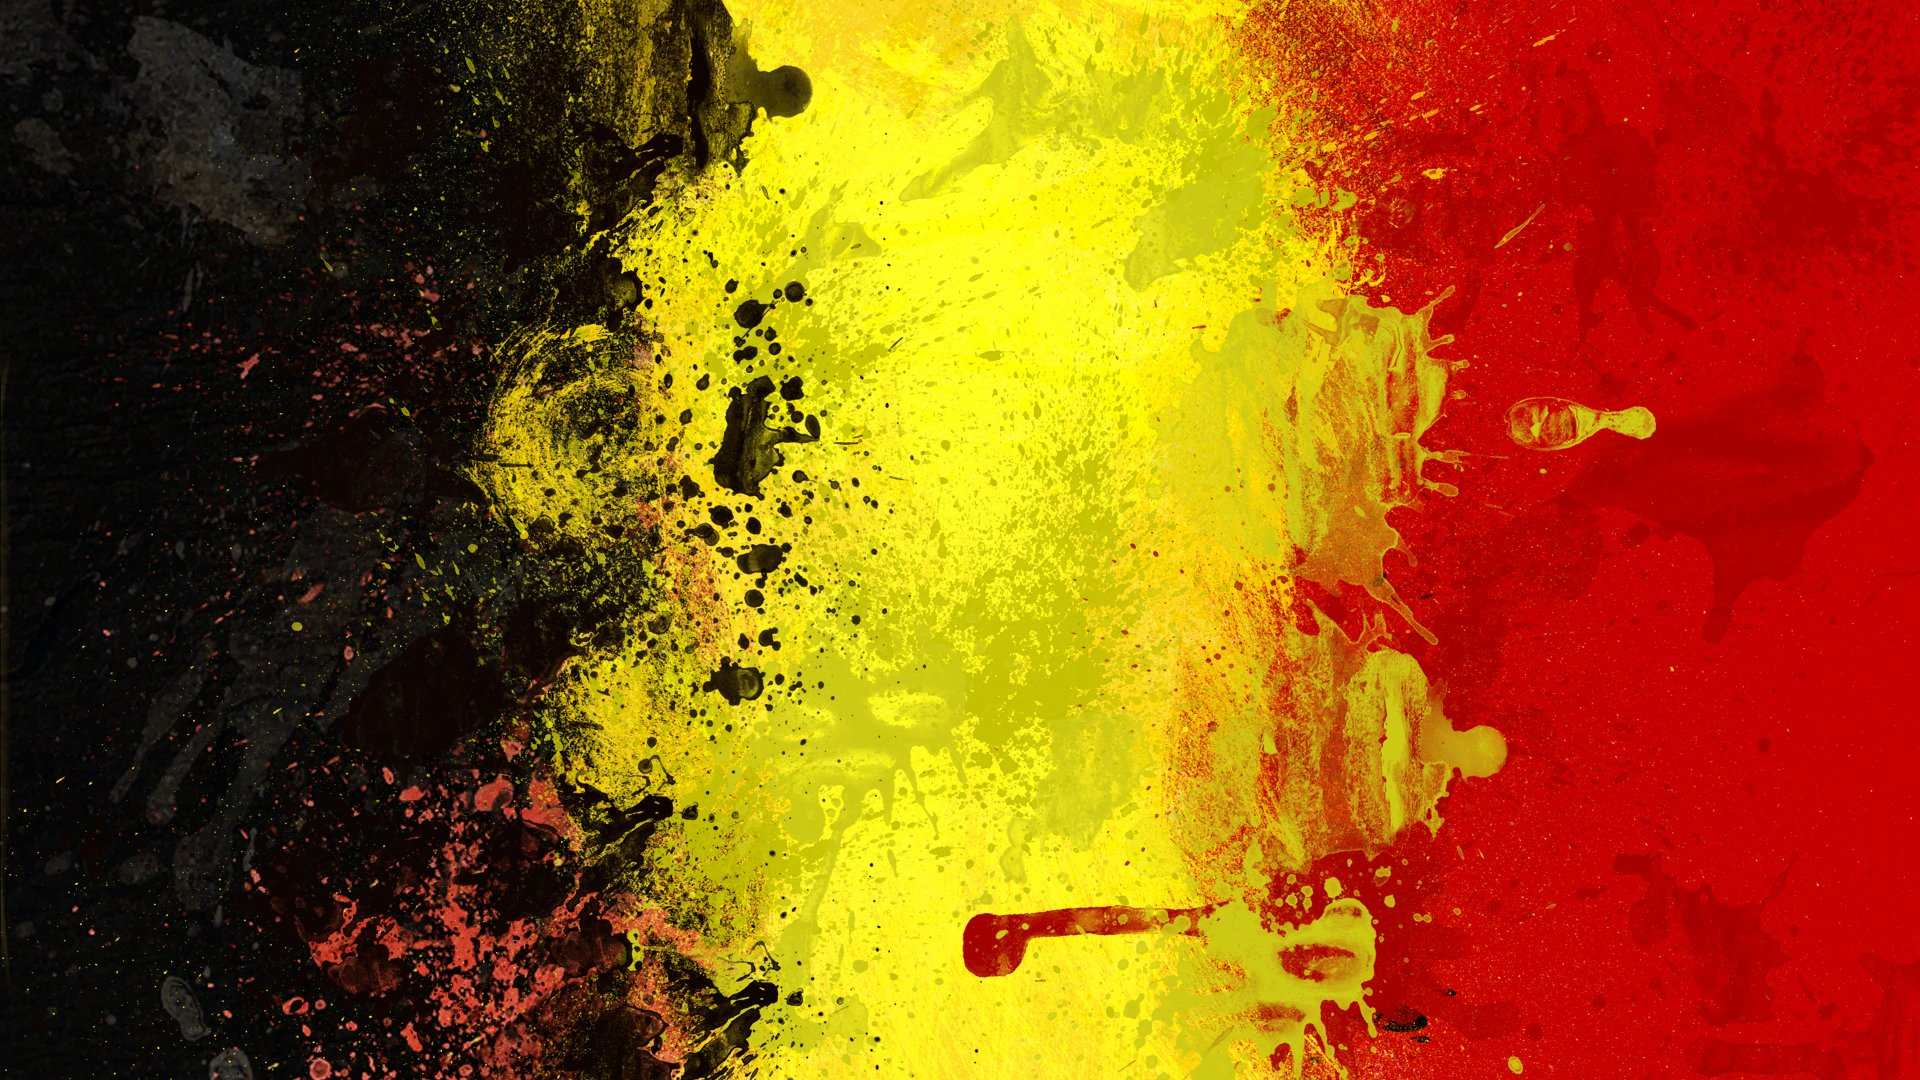 http://hdwallpapersfactory.com/wallpaper/belgian_flag_by_magnaen_d3io7ab_desktop_1920x1080_hd-wallpaper-1216824.jpg